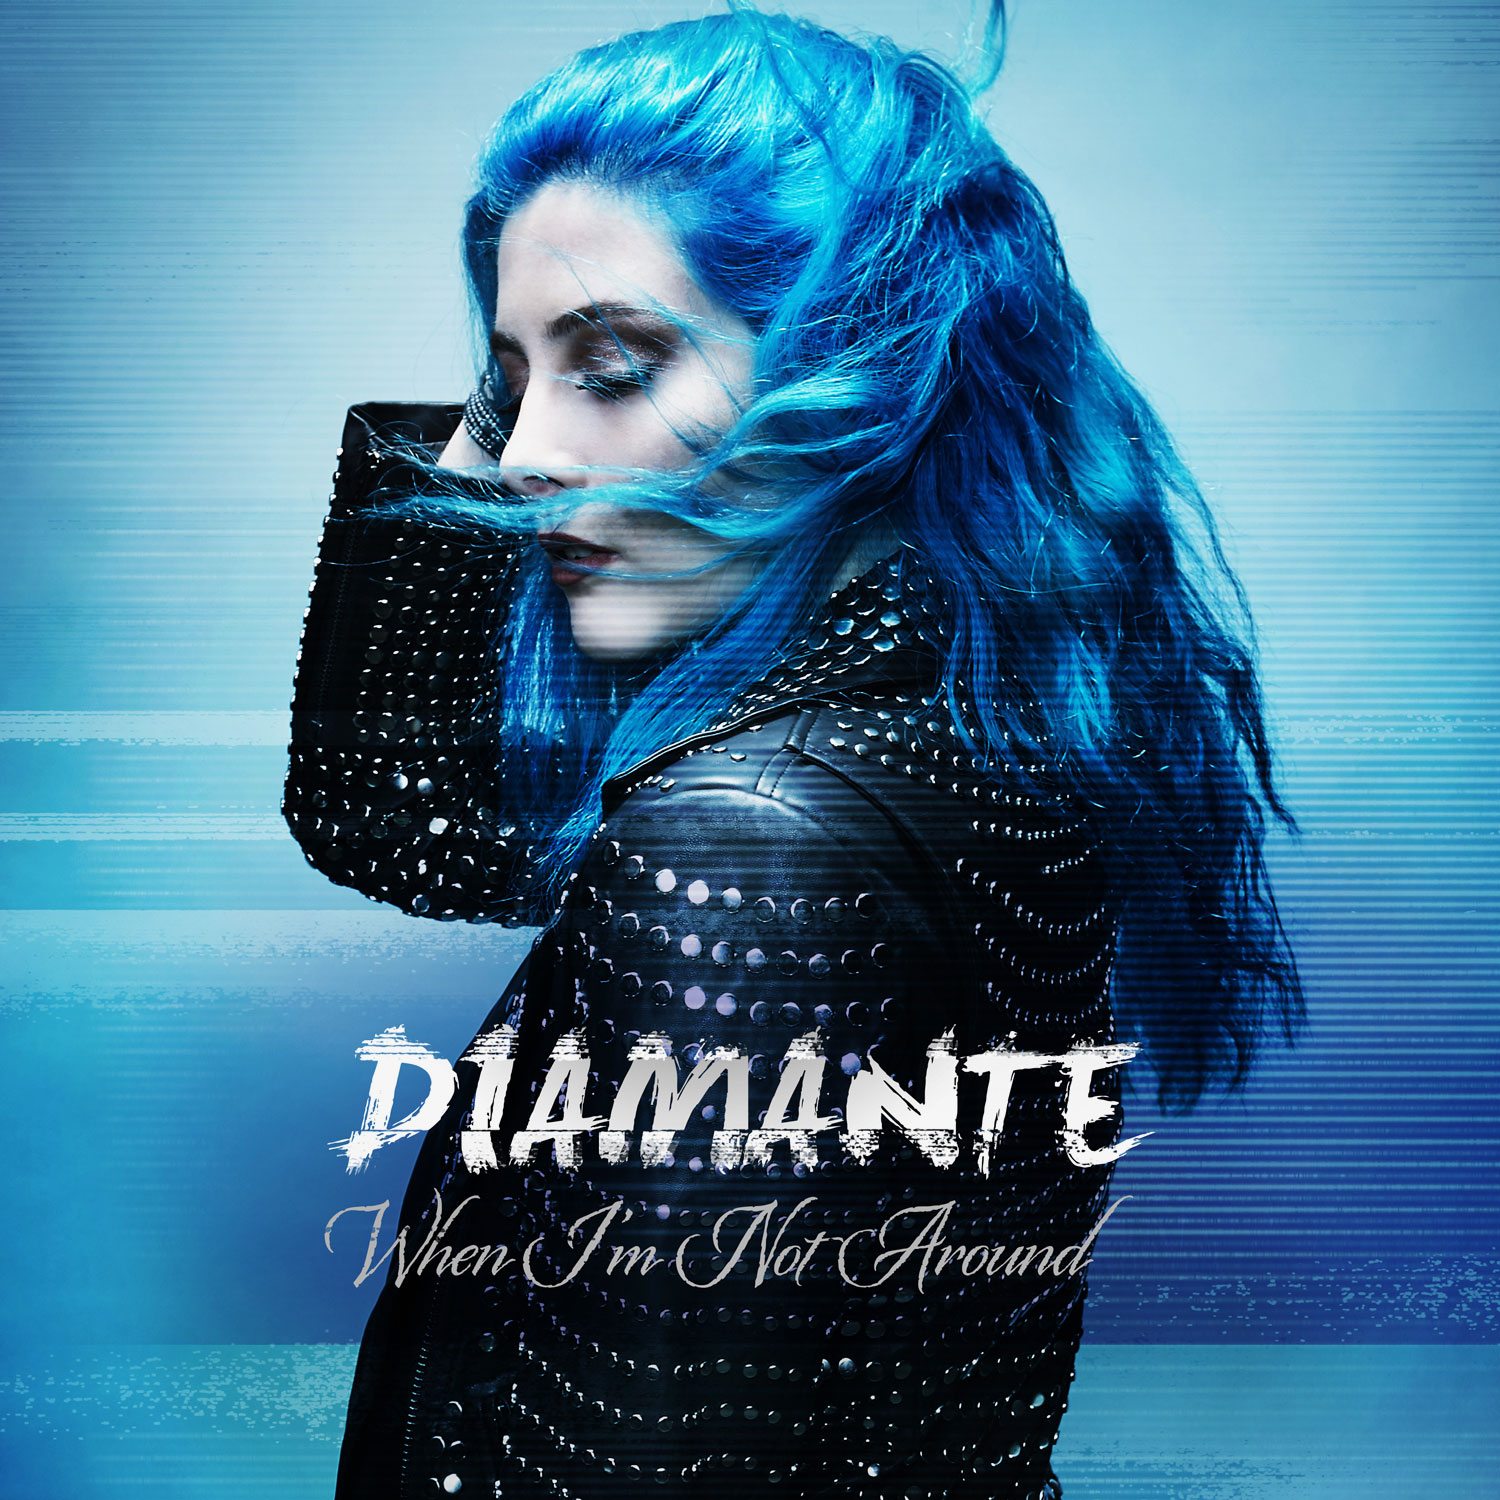 DiamanteWS